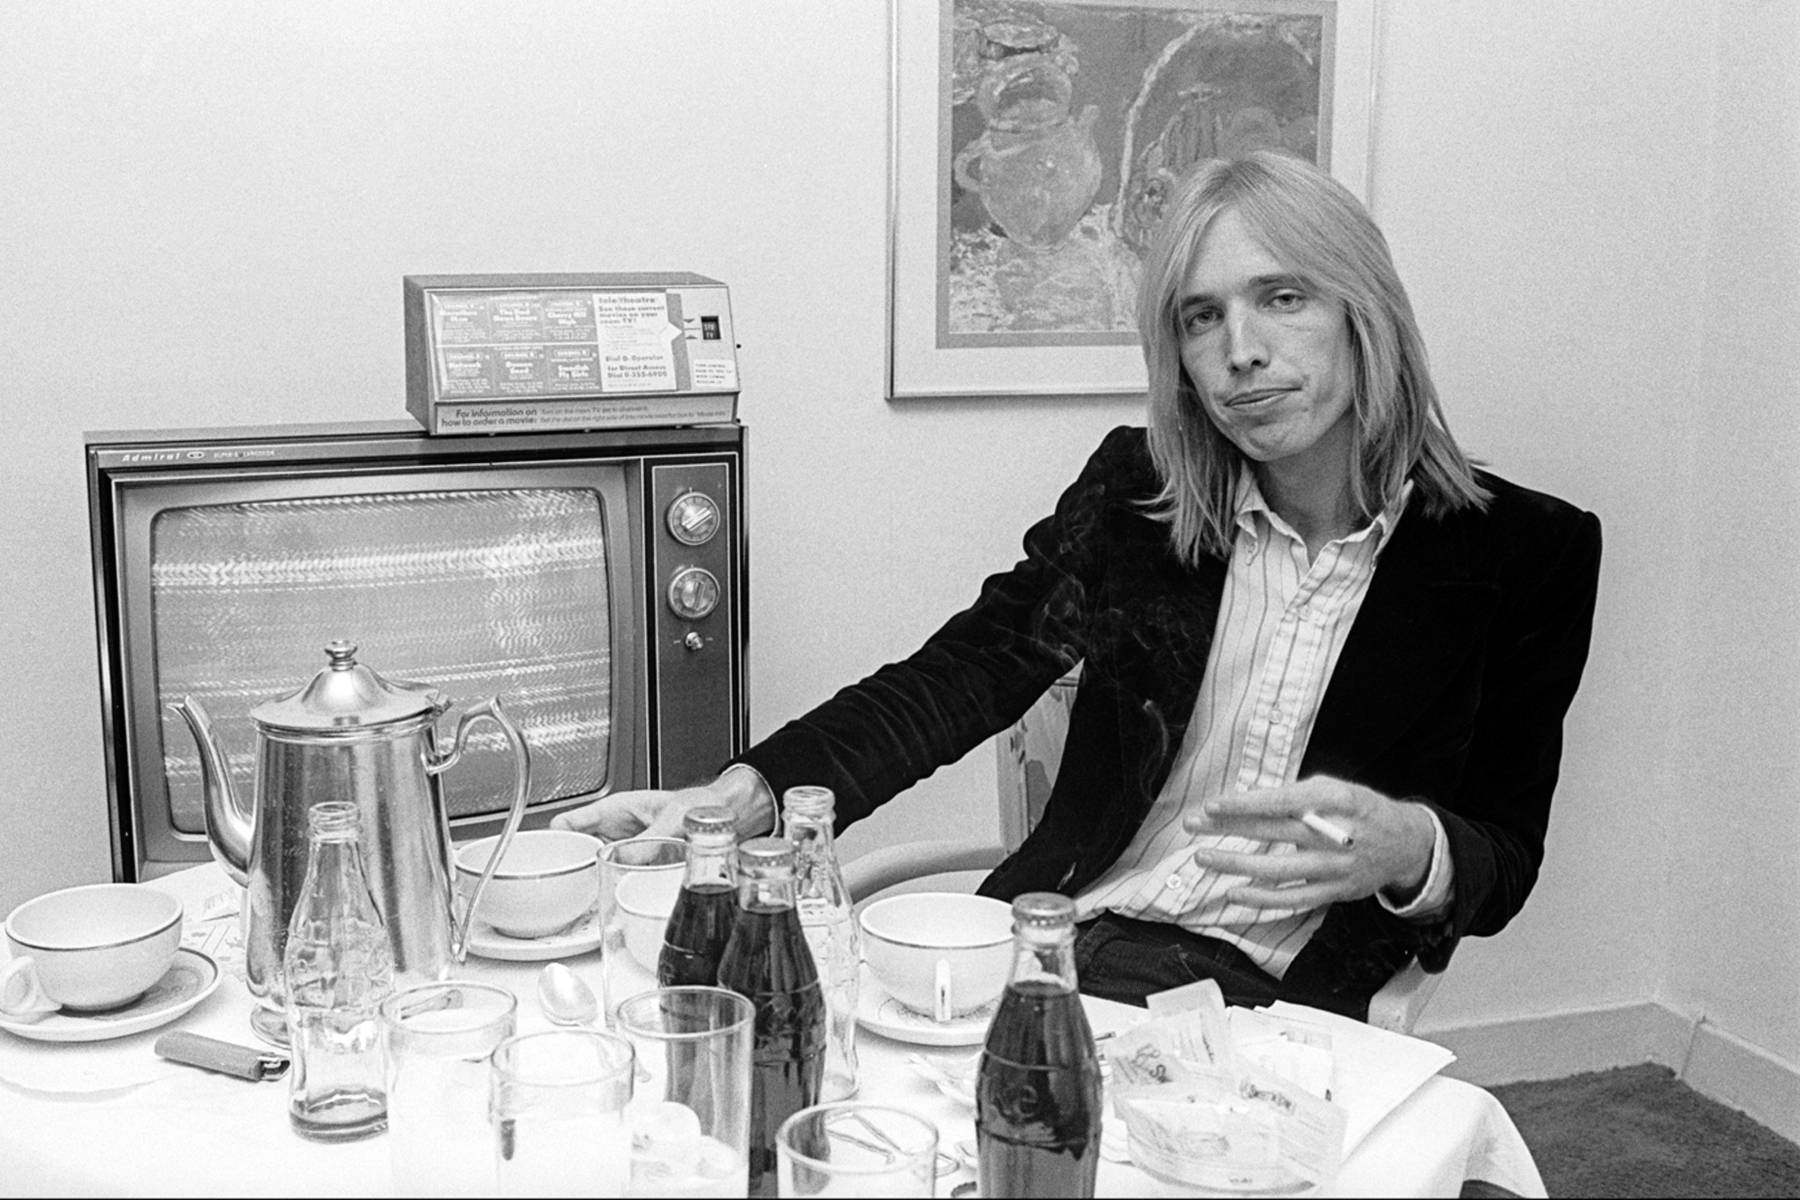 Portrait of American musician Tom Petty in his hotel room, New York, New York, October 7, 1977. (Photo by Allan Tannenbaum/Getty Images)